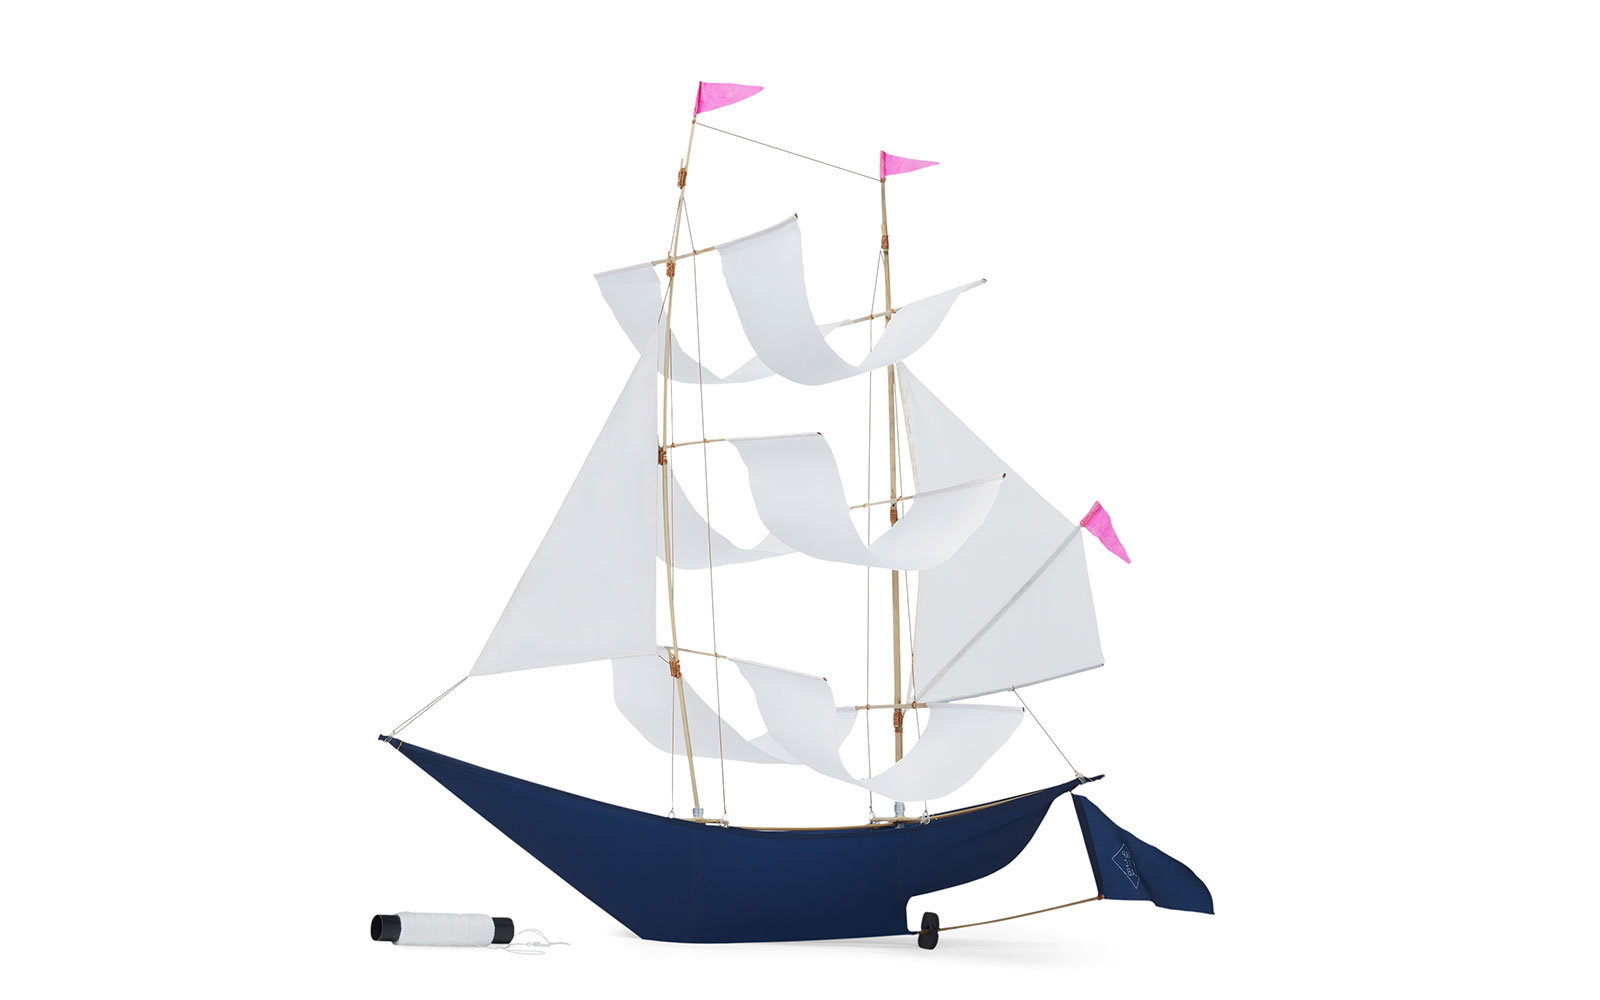 MoMA Sailing Ship Kite